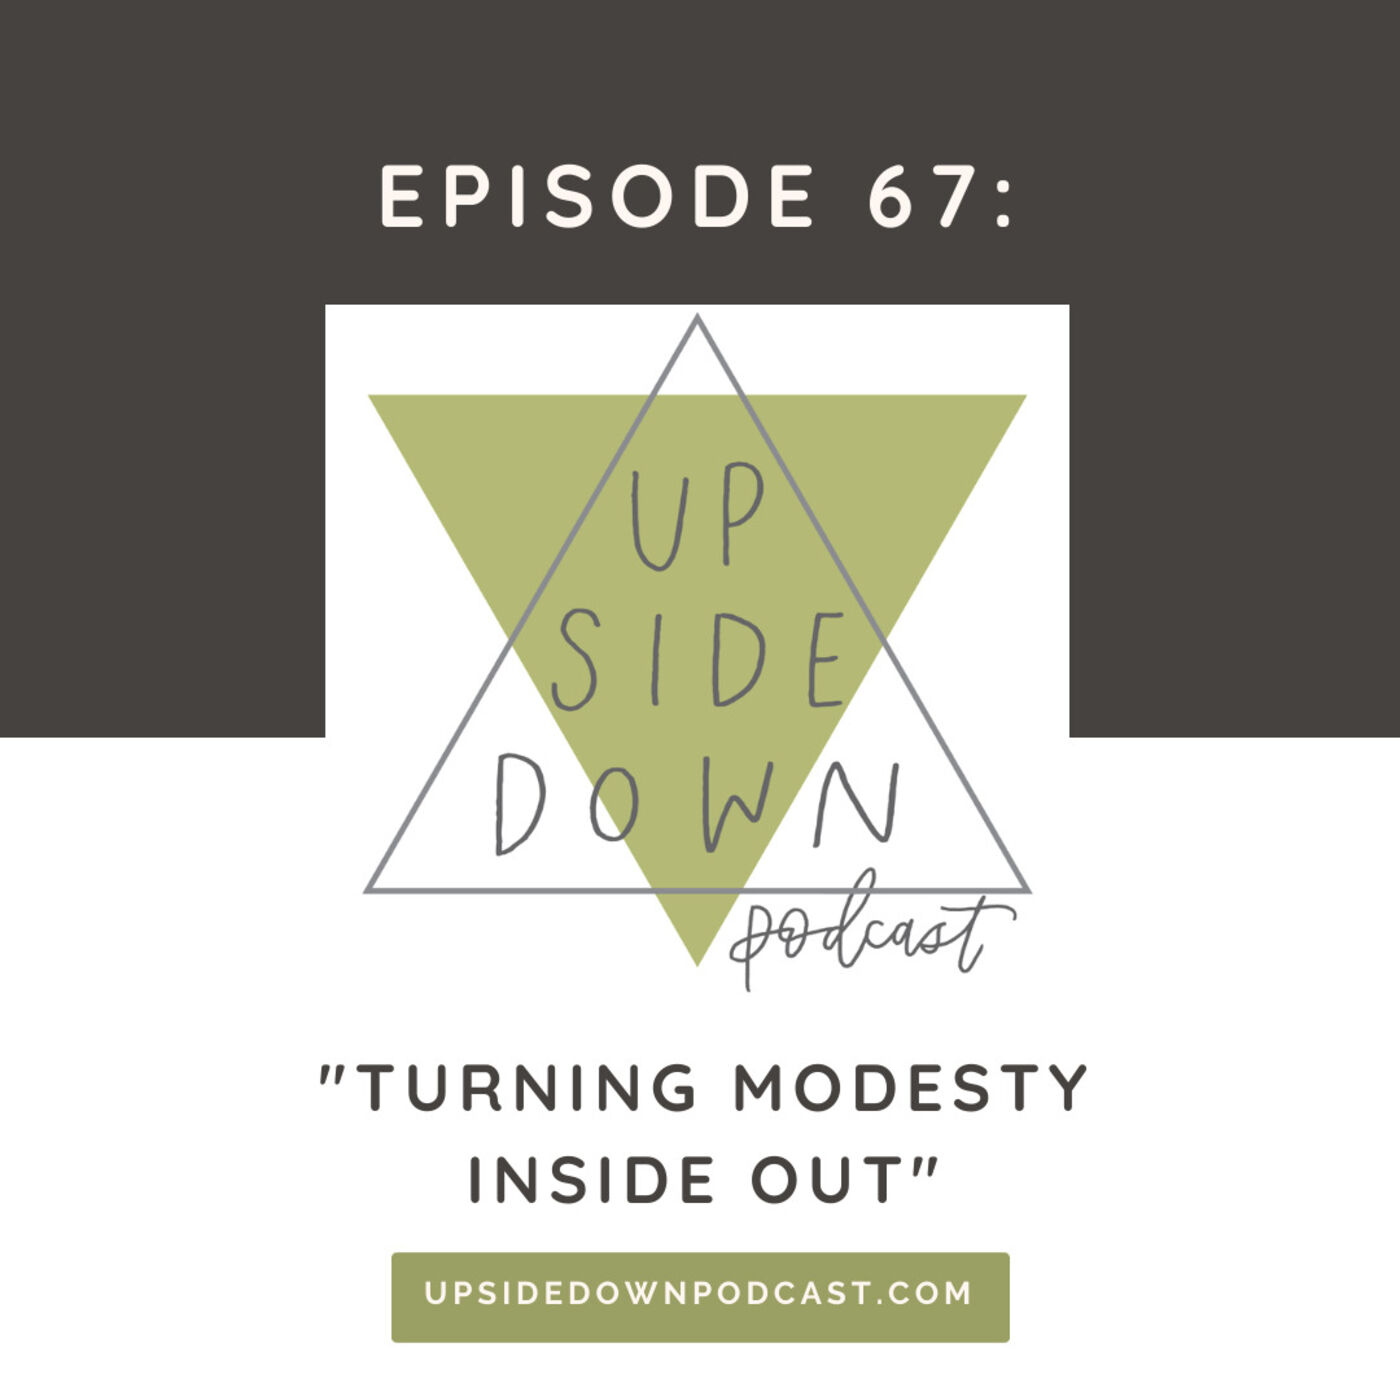 Episode 67 - Turning Modesty Inside Out: Unpacking What it Means to be Modest